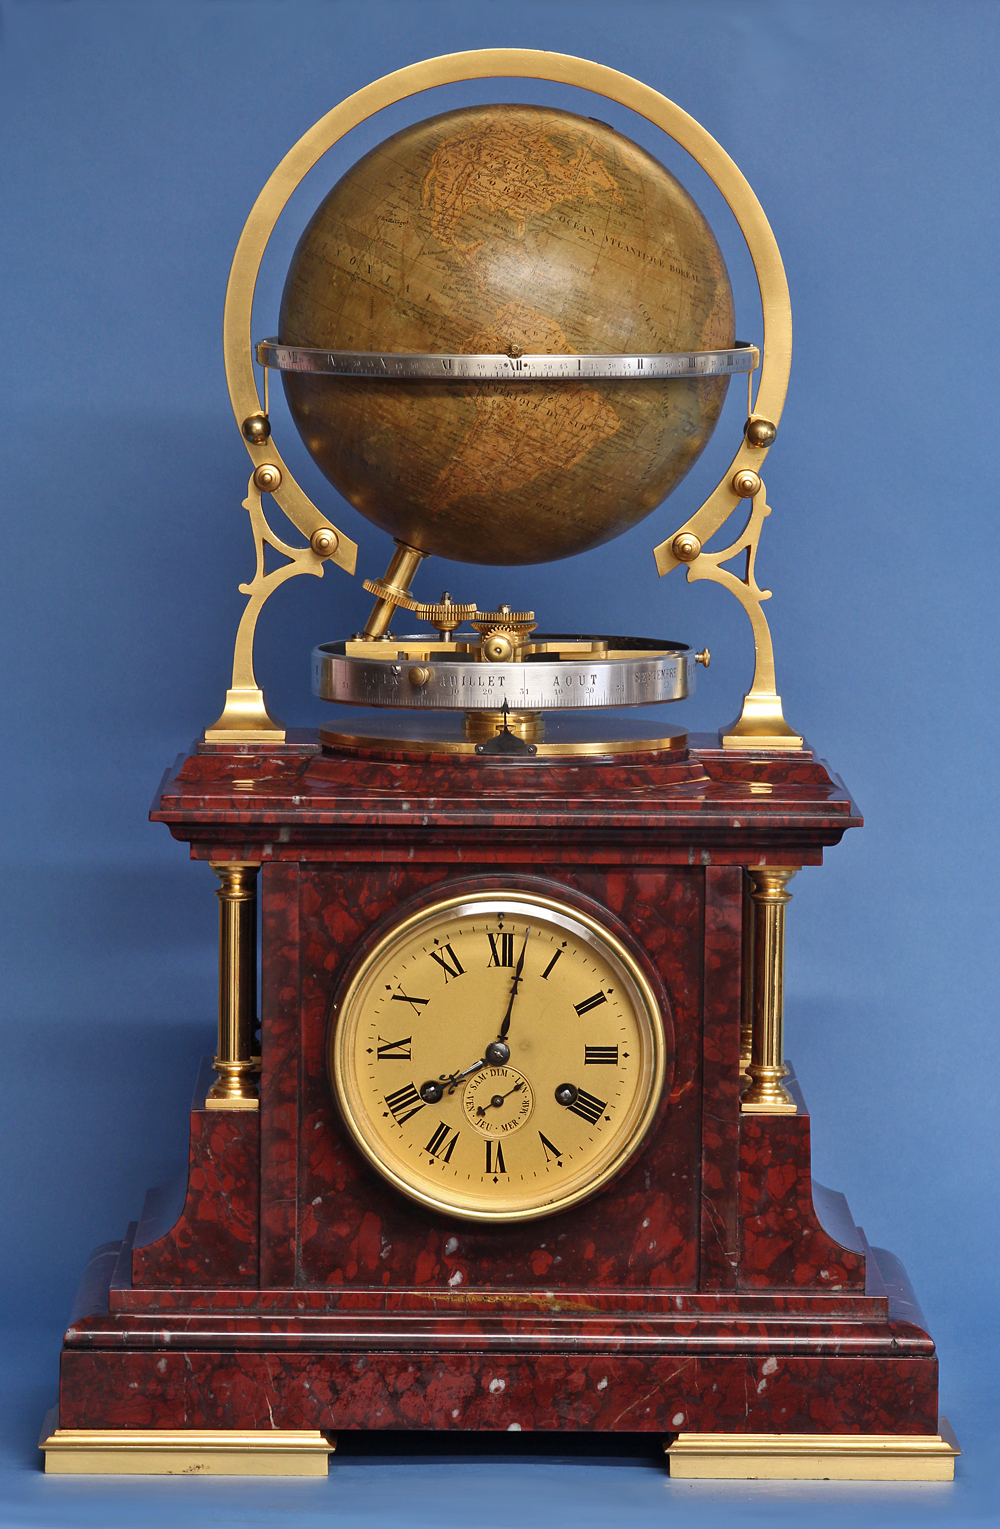 c.1895 French Globe Mantel Clock.